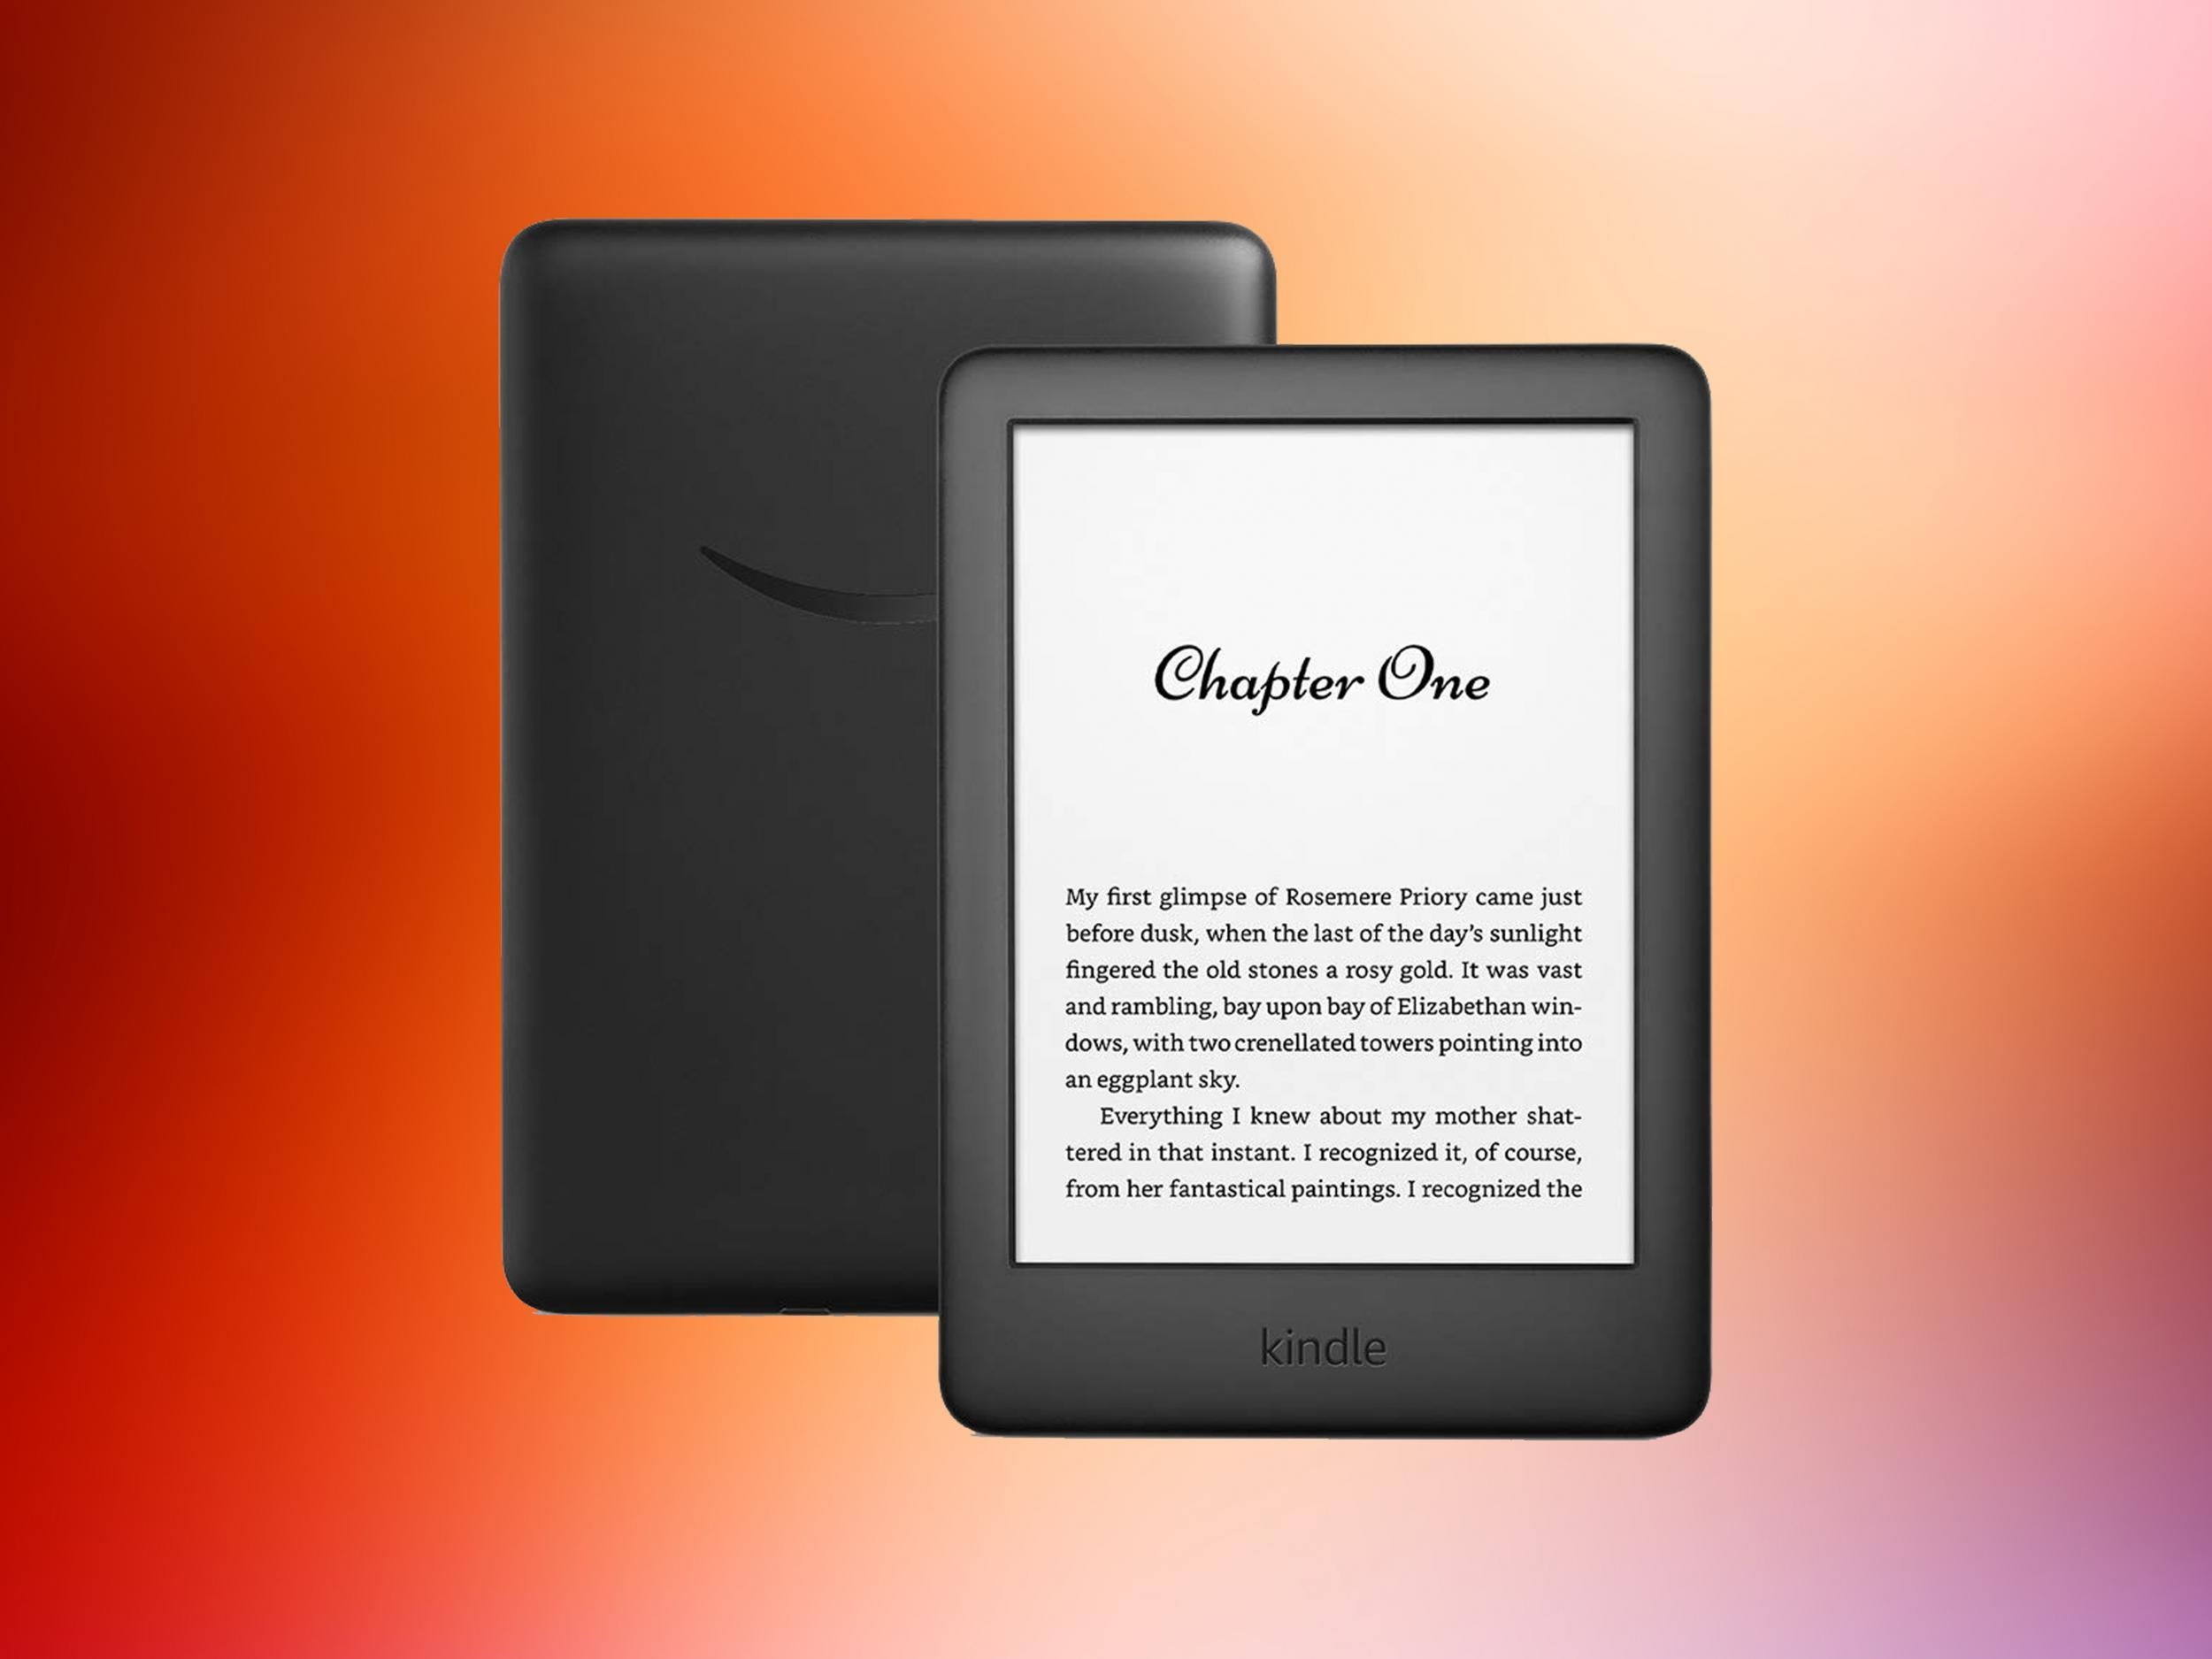 Prime Day 2019: Best deals on Amazon devices from kindles to